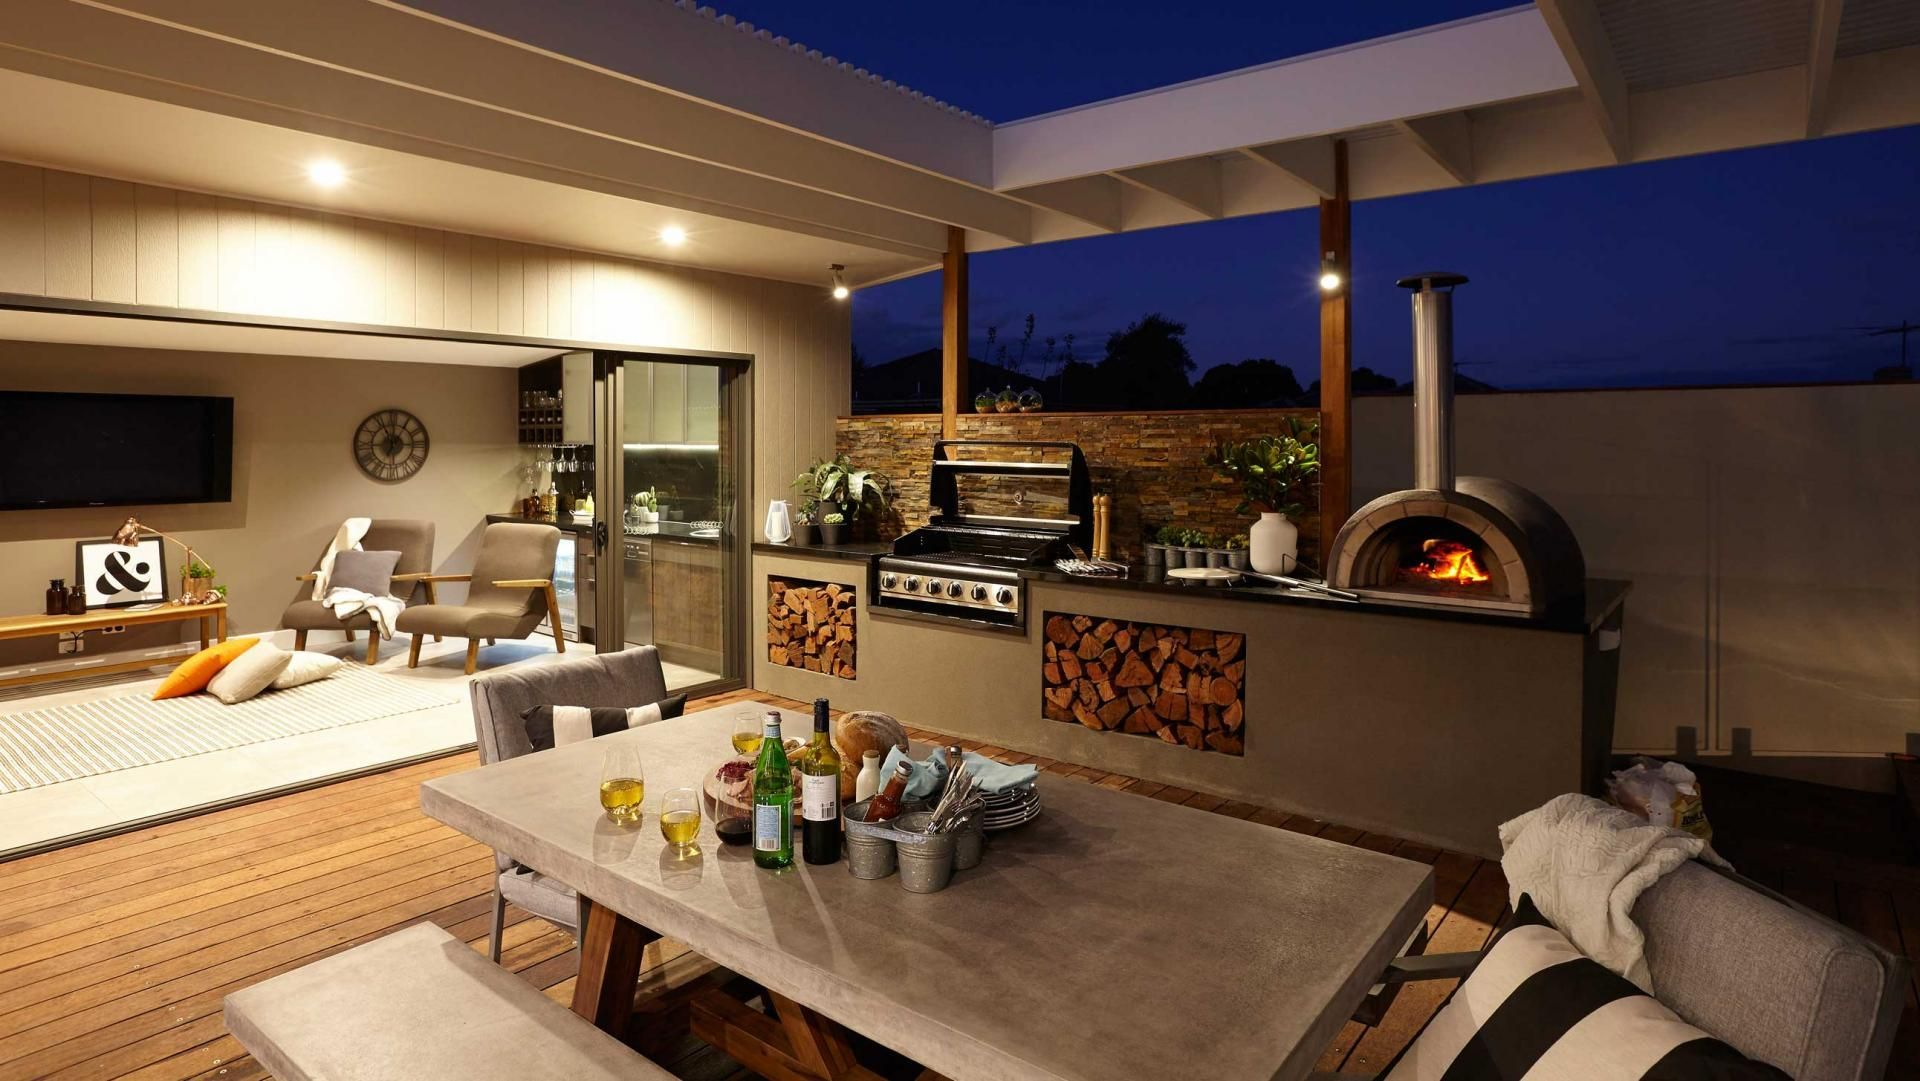 Image result for outdoor entertainment area ideas for ... on Small Backyard Entertainment Area Ideas id=73498